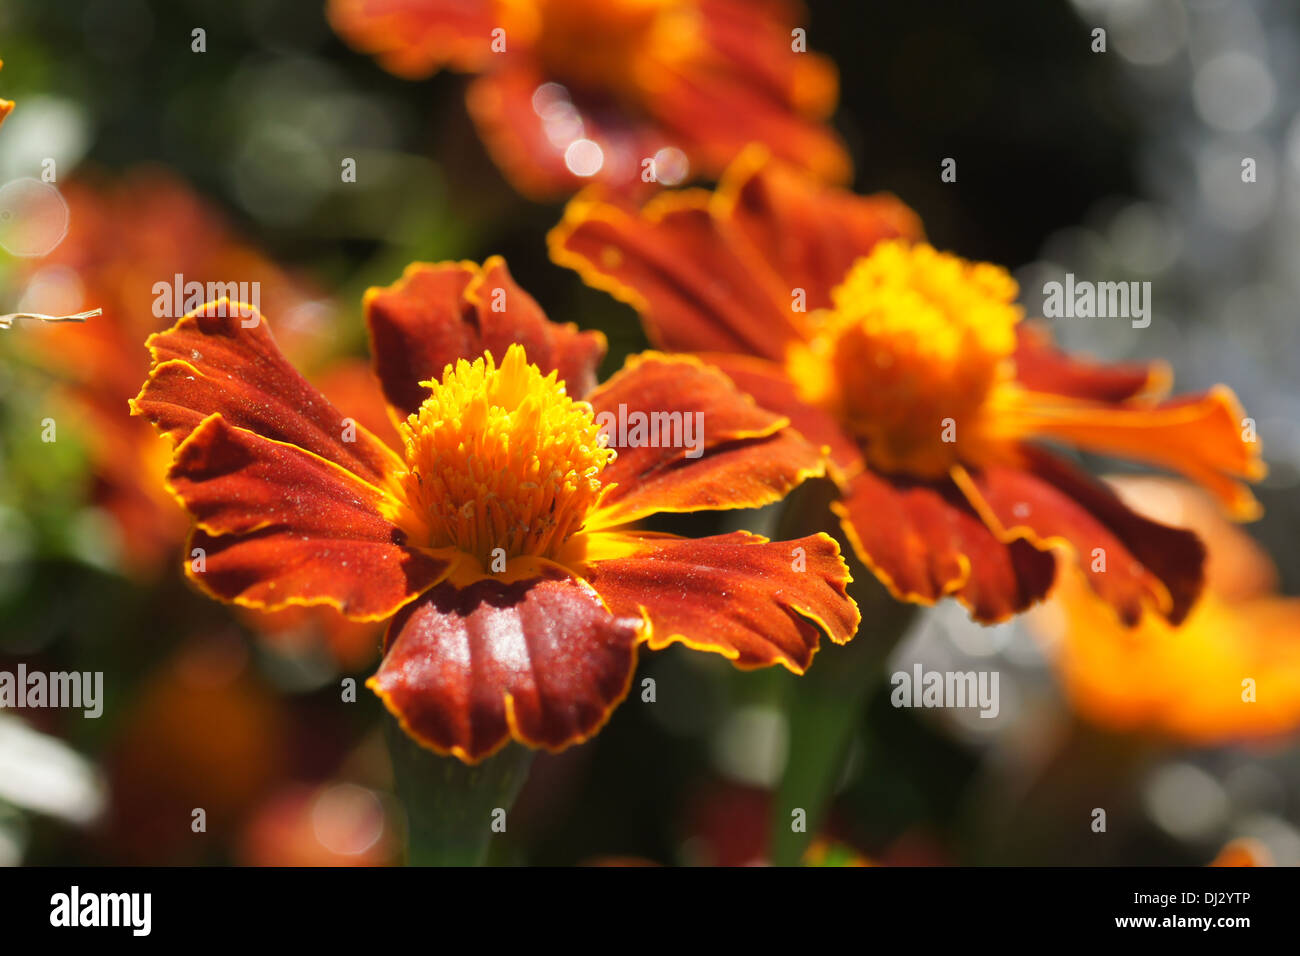 Morning Marigold Flowers Stock Photos   Morning Marigold Flowers     Marigold   Stock Image